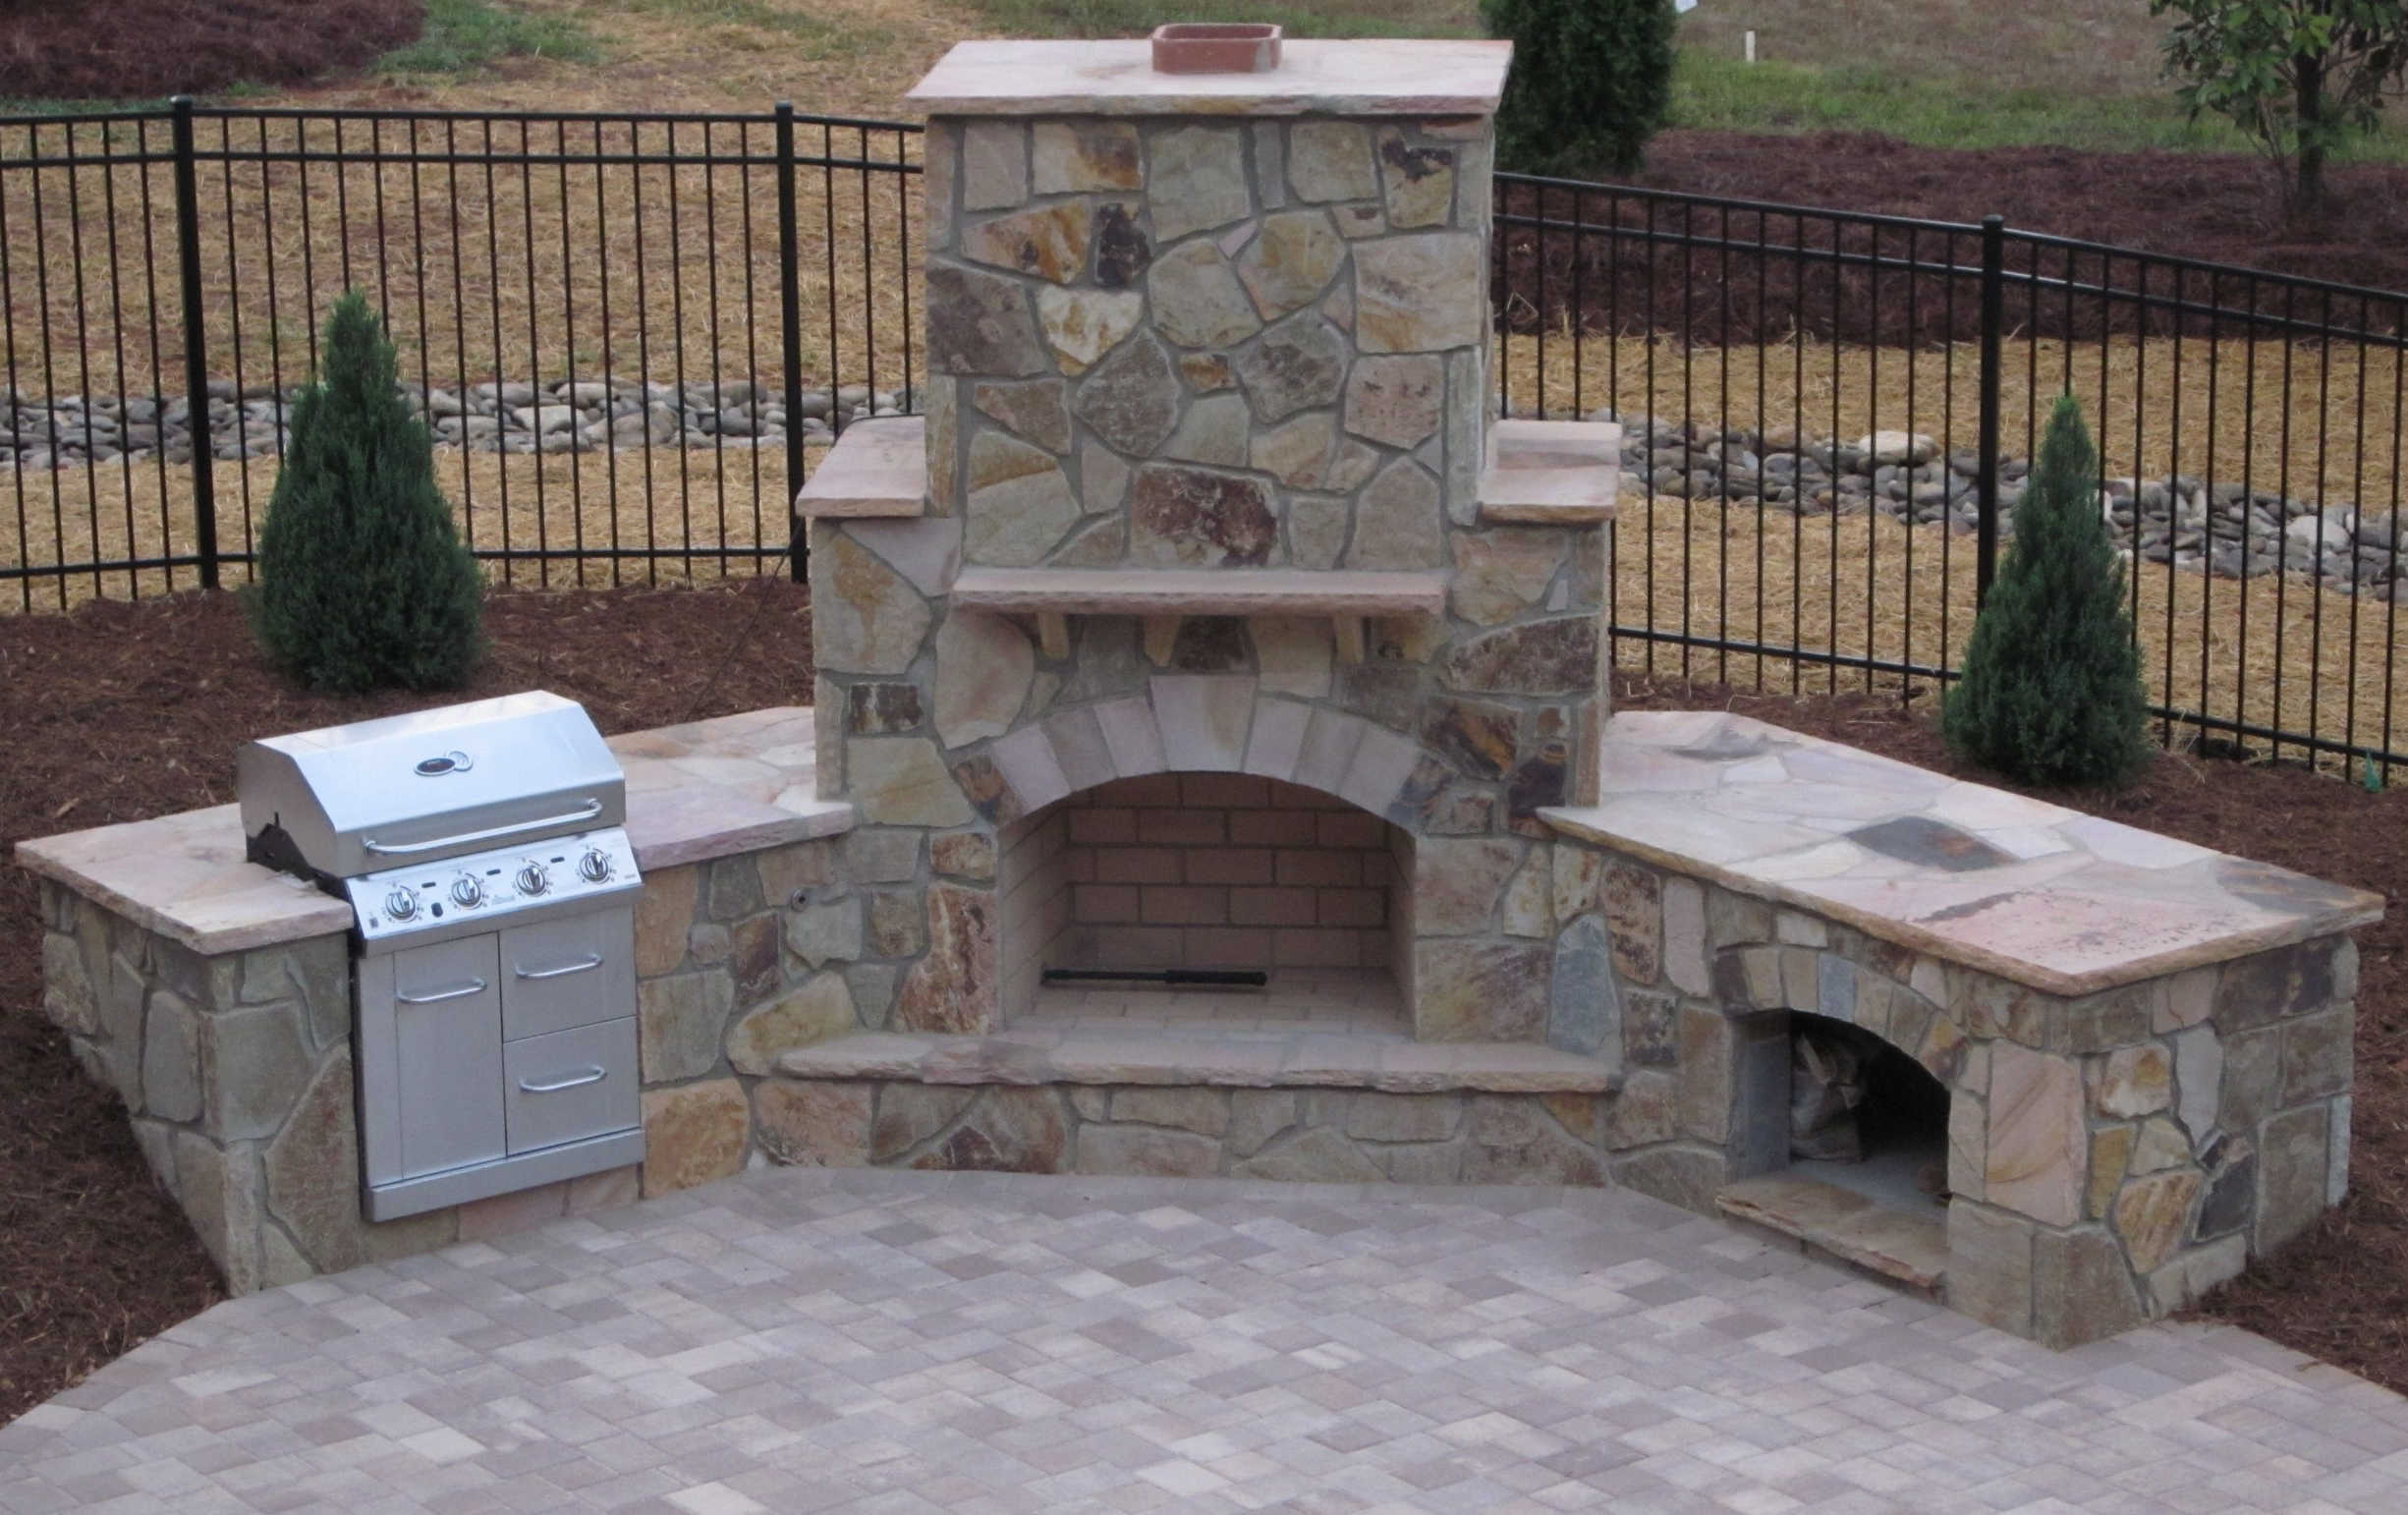 How to build an outdoor fireplace step by step guide for New construction wood burning fireplace